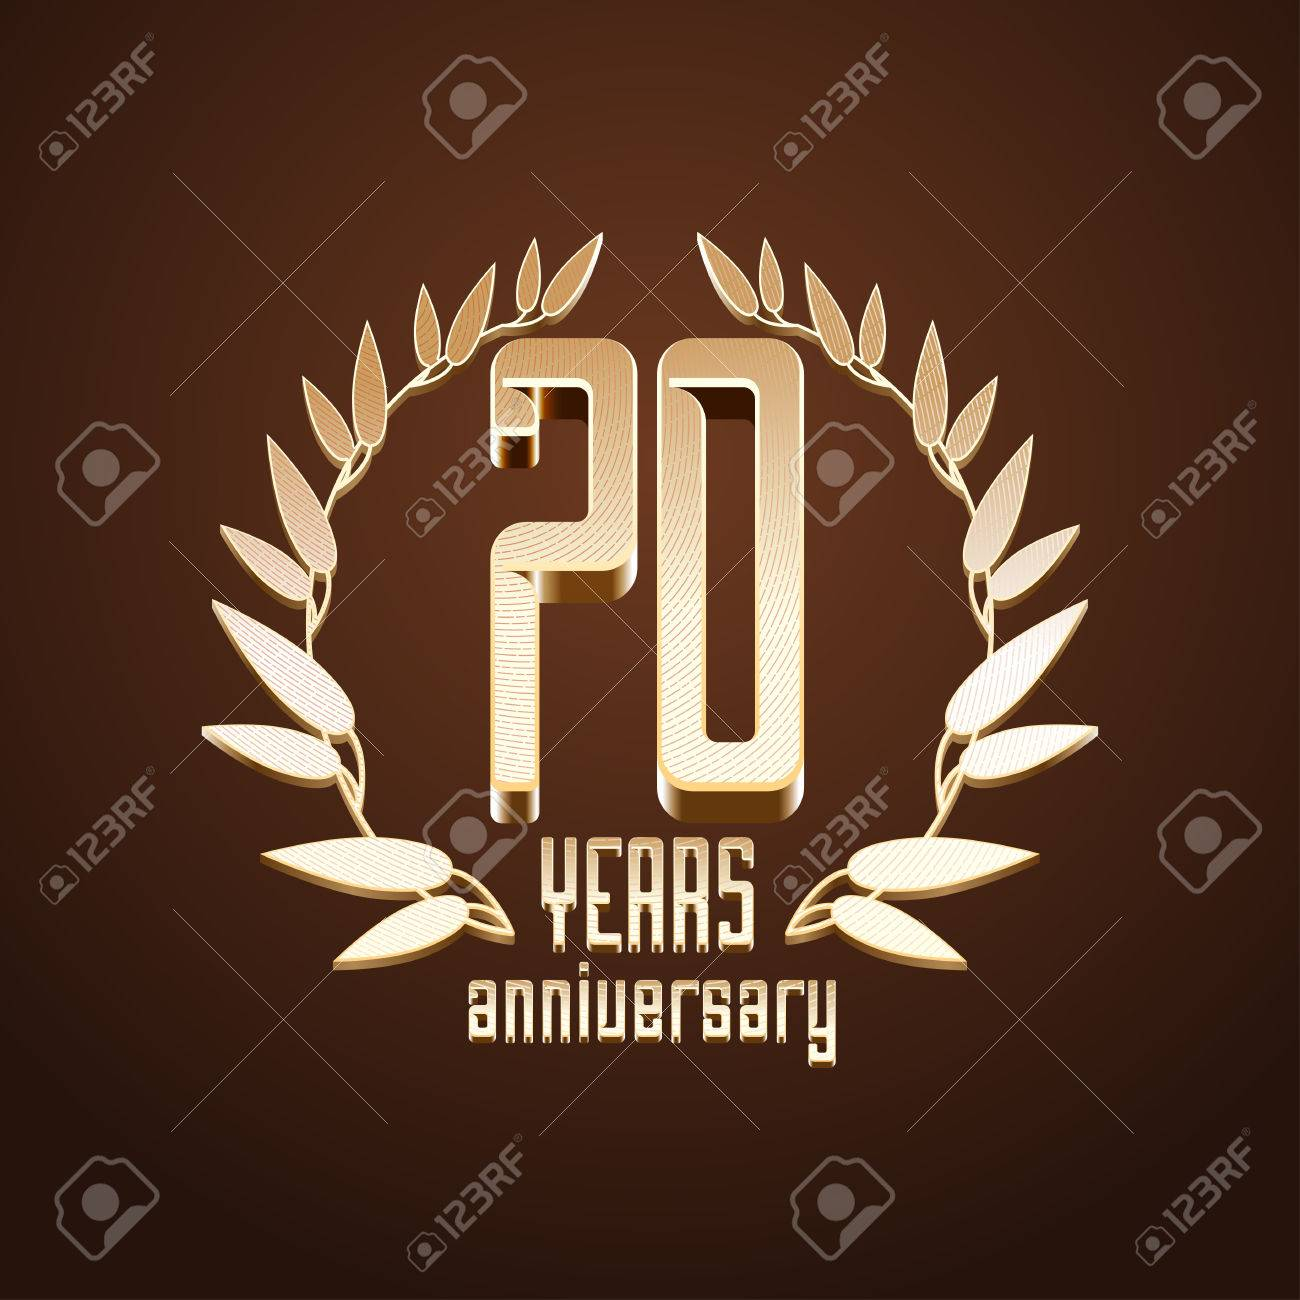 70th Birthday Stock Photos Illustrations And Vector Art - 70 years anniversary vector icon 70th birthday age classic decoration design element